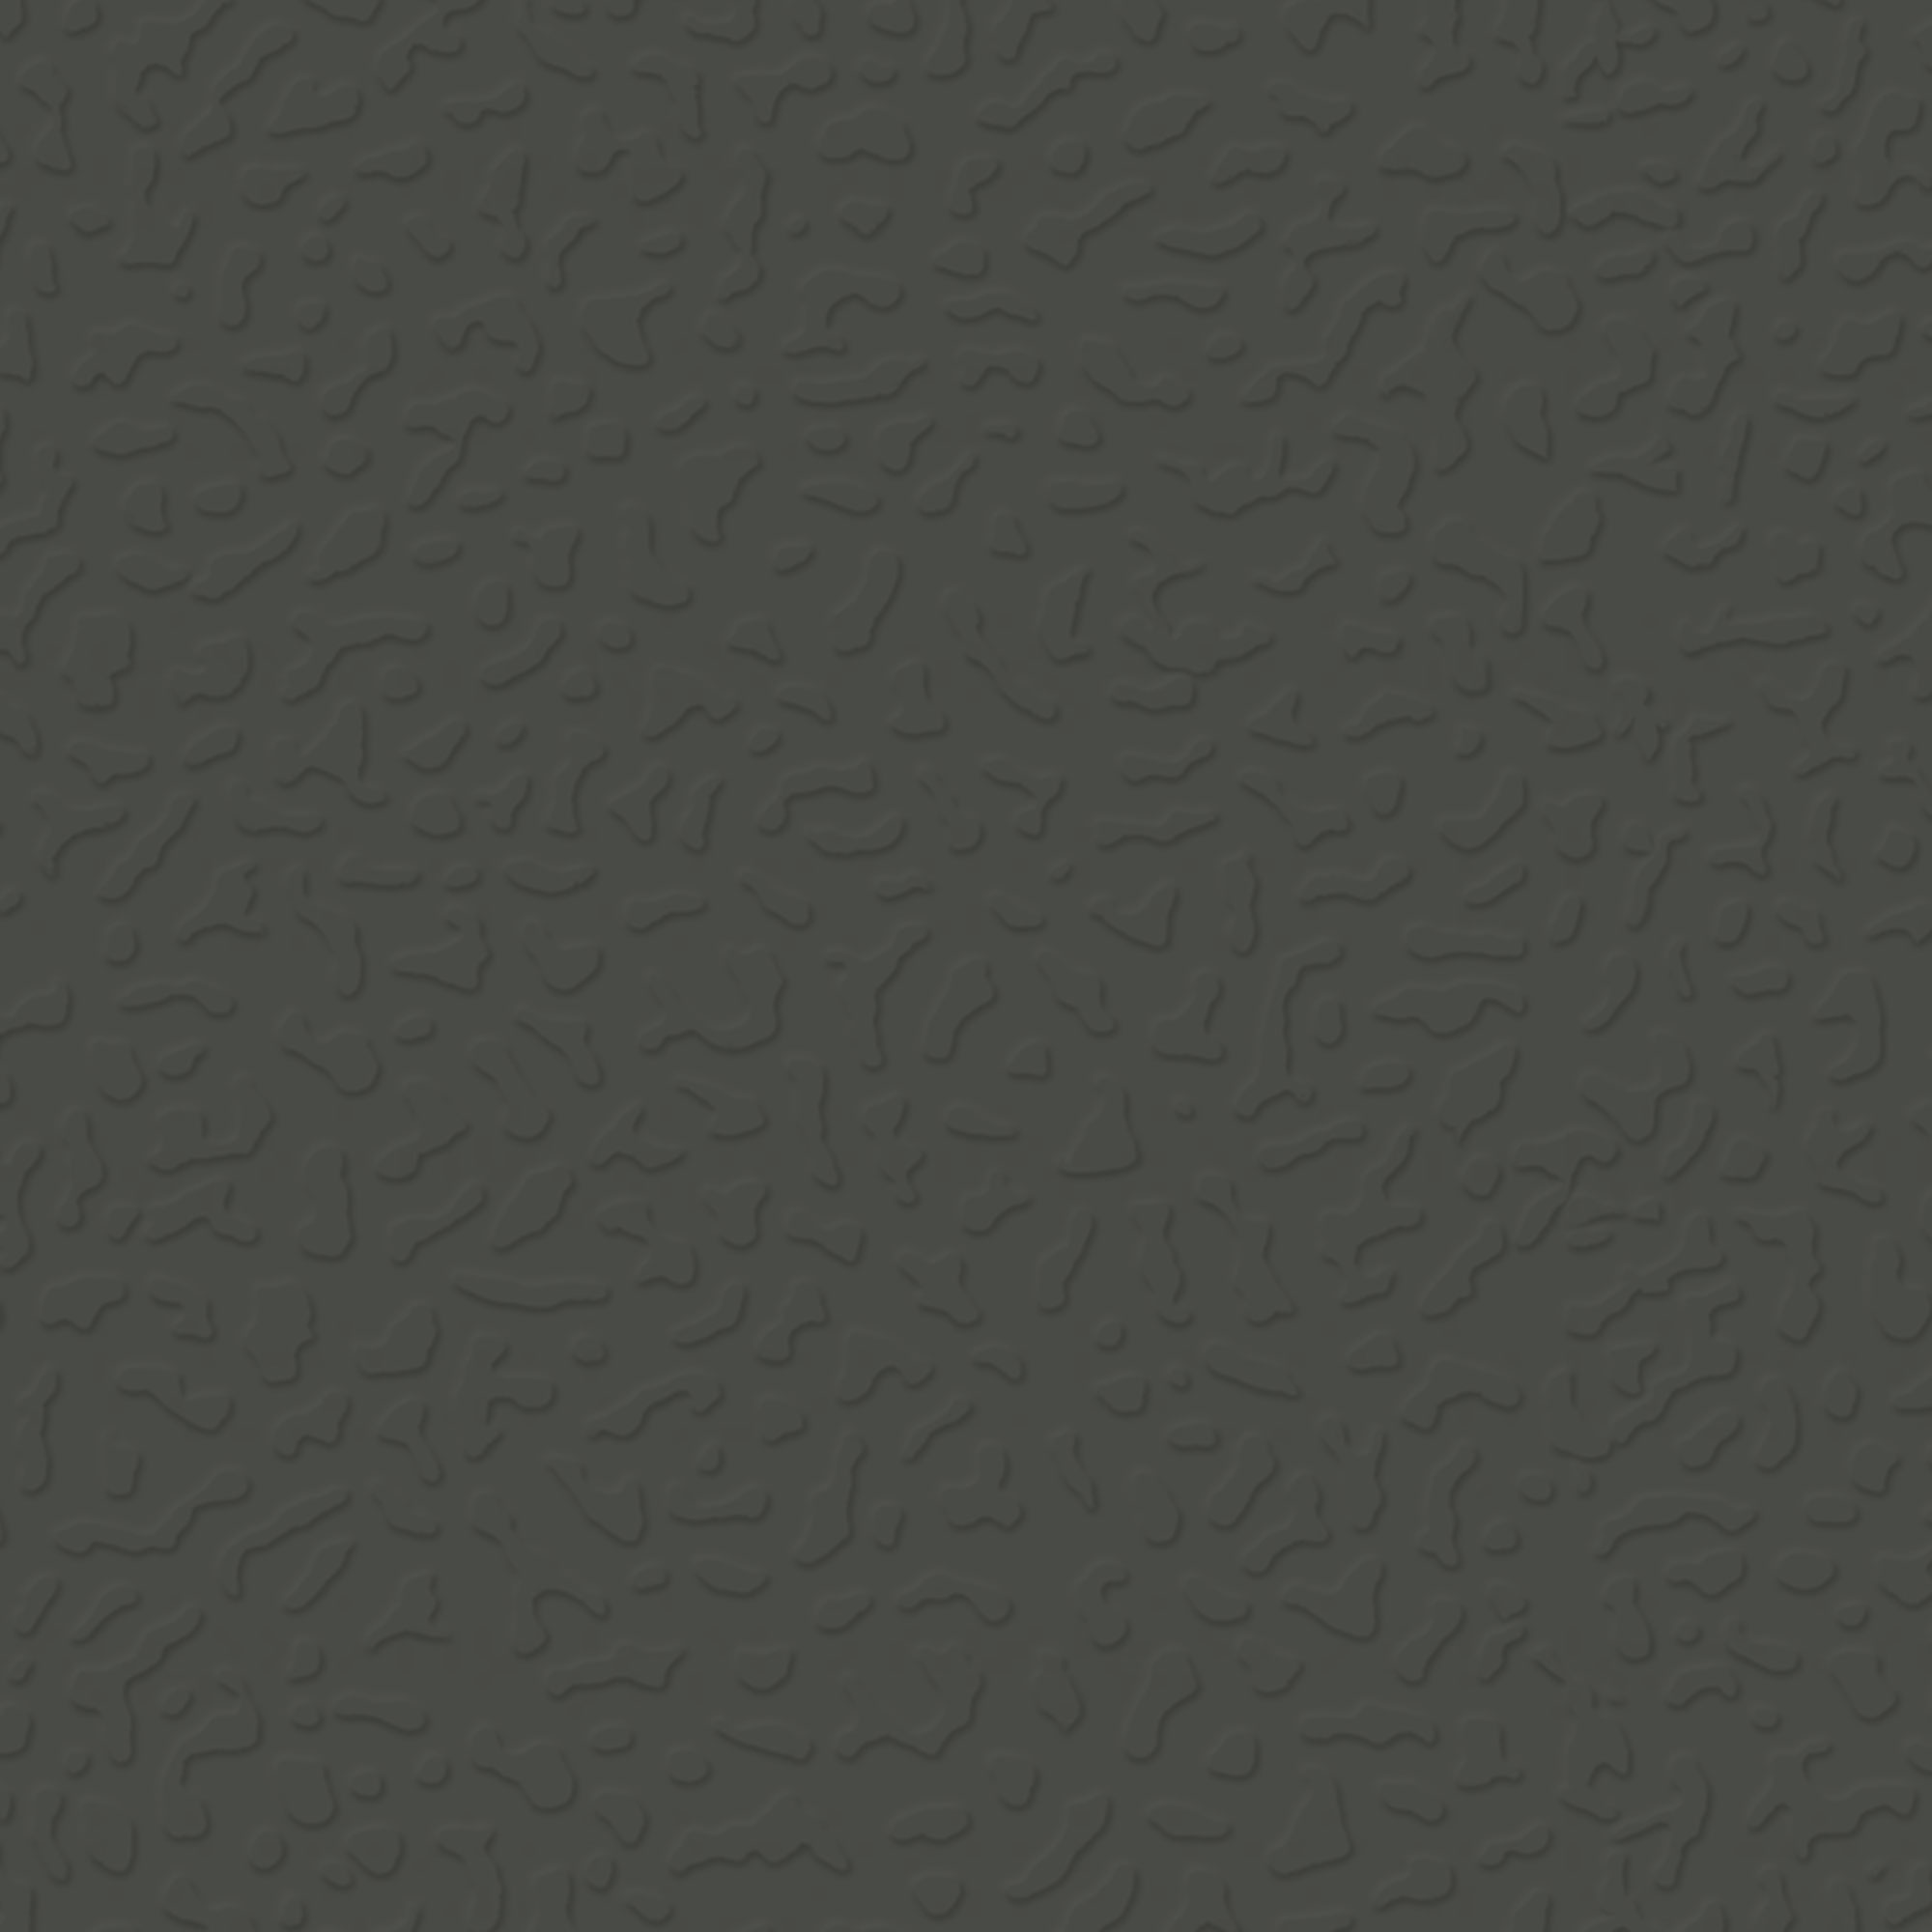 Roppe Rubber Tile 900 - Textured Design (993) Black Brown LB996193